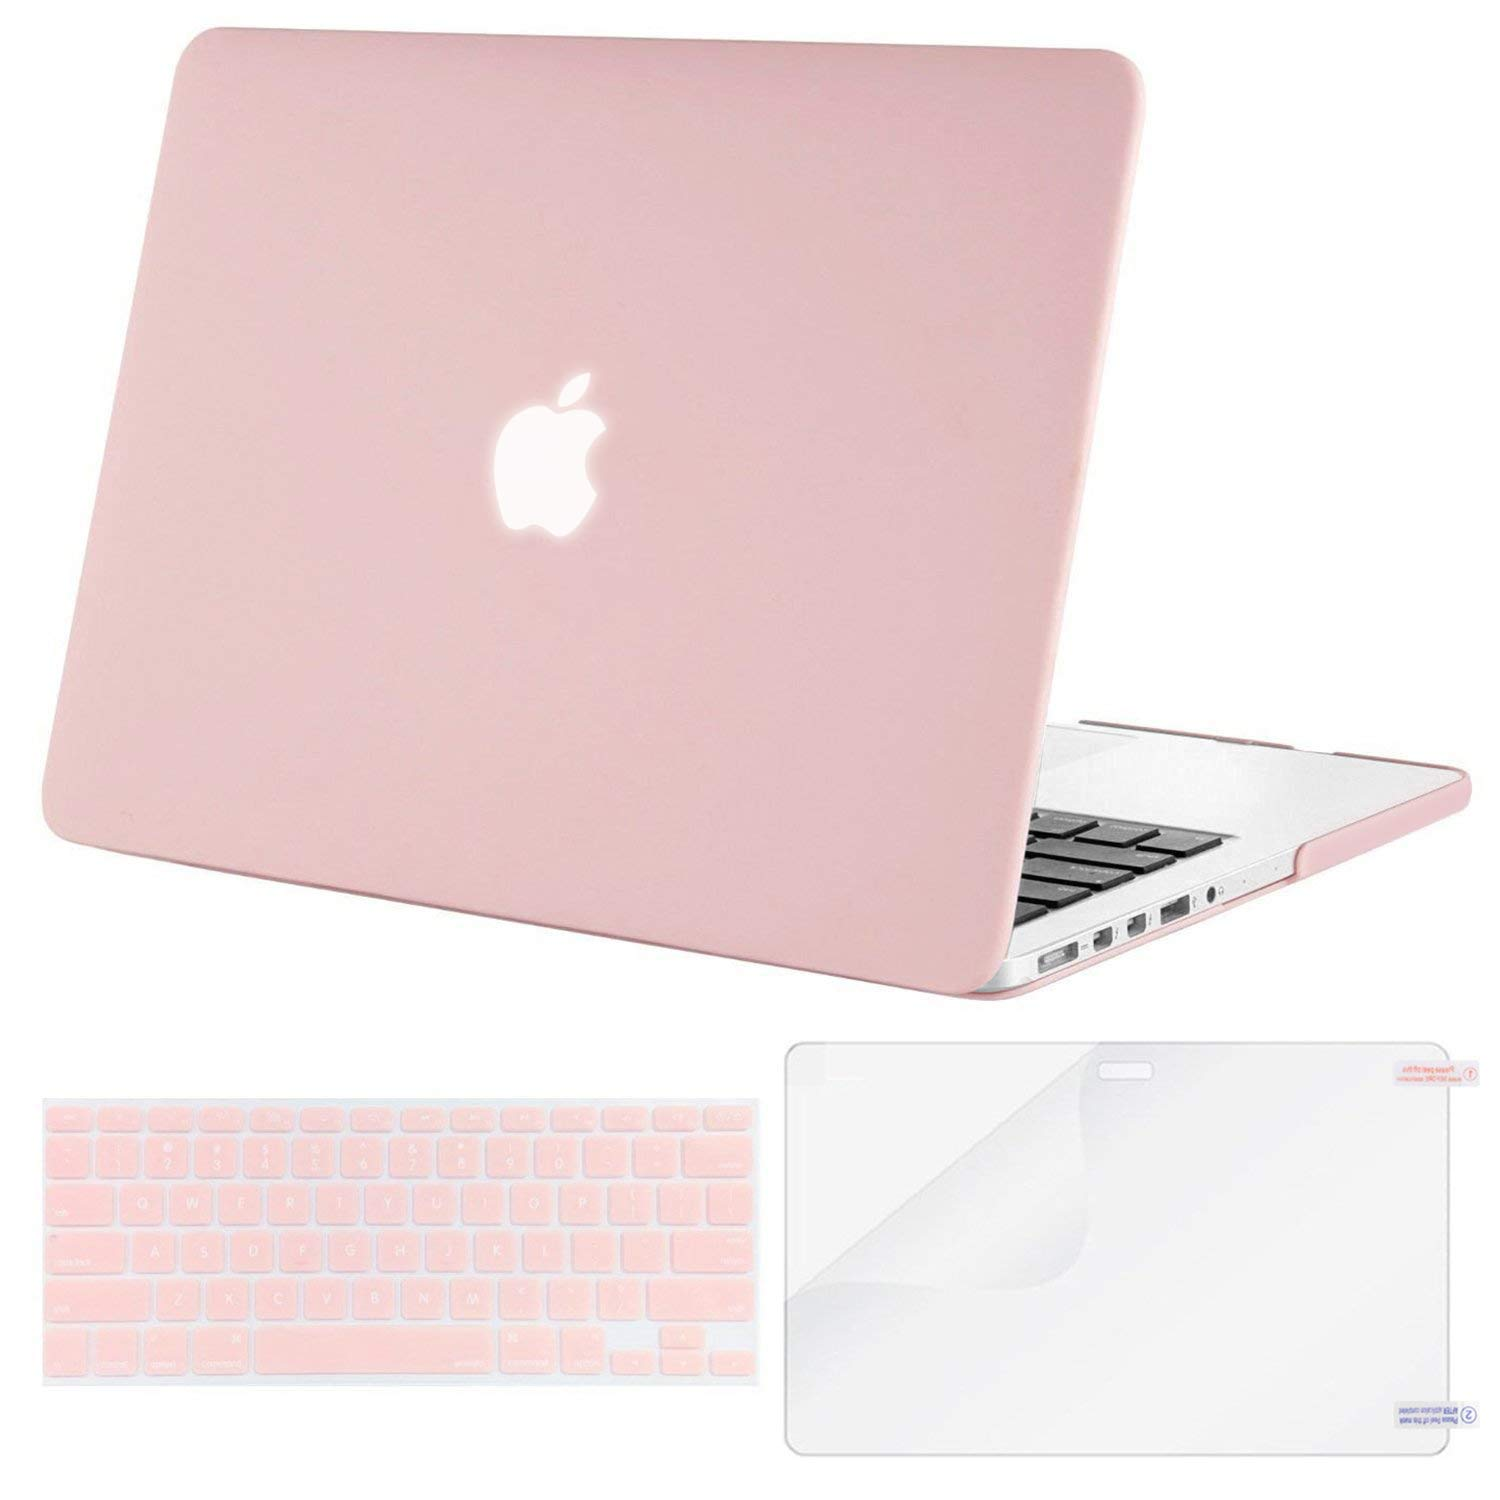 MOSISO Case Only Compatible with Older Version MacBook Pro 15 inch Model A1398 with Retina Display (2015 - end 2012 Release), Plastic Hard Shell & Keyboard Cover & Screen Protector, Rose Quartz by MOSISO